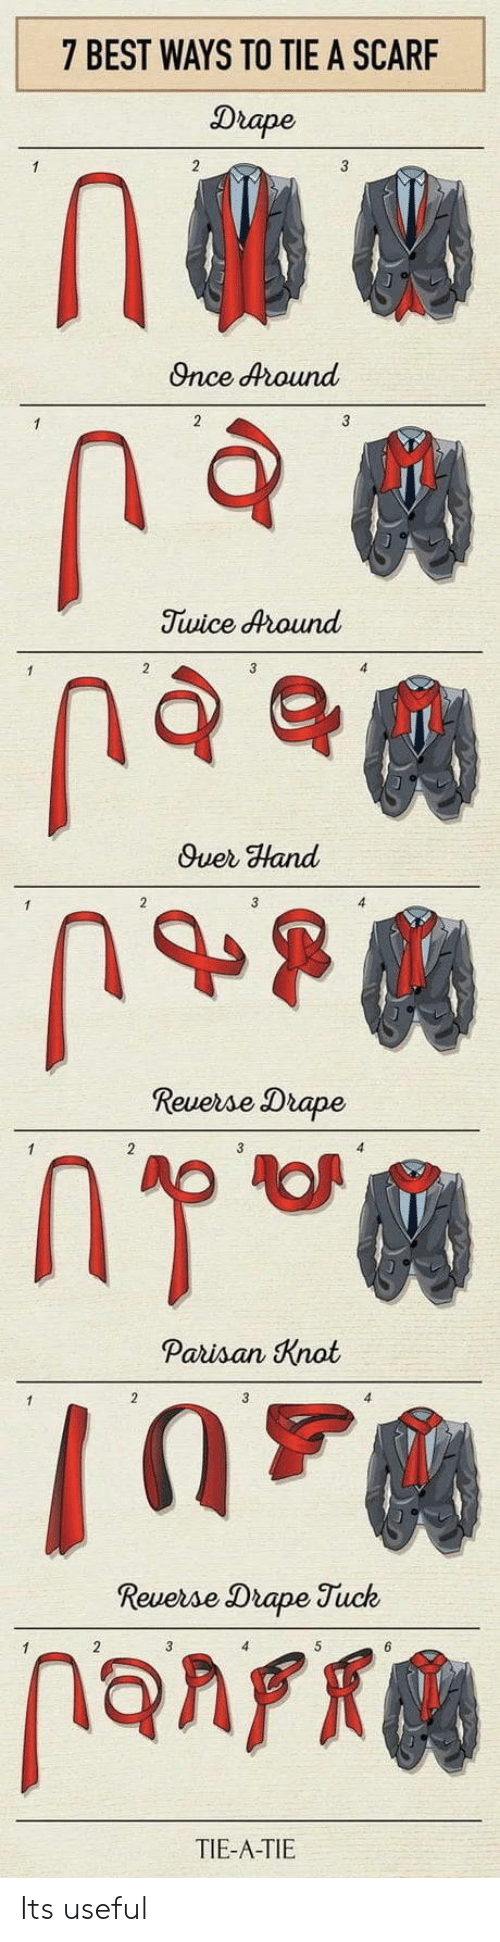 Best, Once, and Hand: 7 BEST WAYS TO TIE A SCARF  Drape  Once dound  Twice dround  Quer Hand  Revese Drape  Paisan Knat  Drape Tuck  TIE-A-TIE Its useful